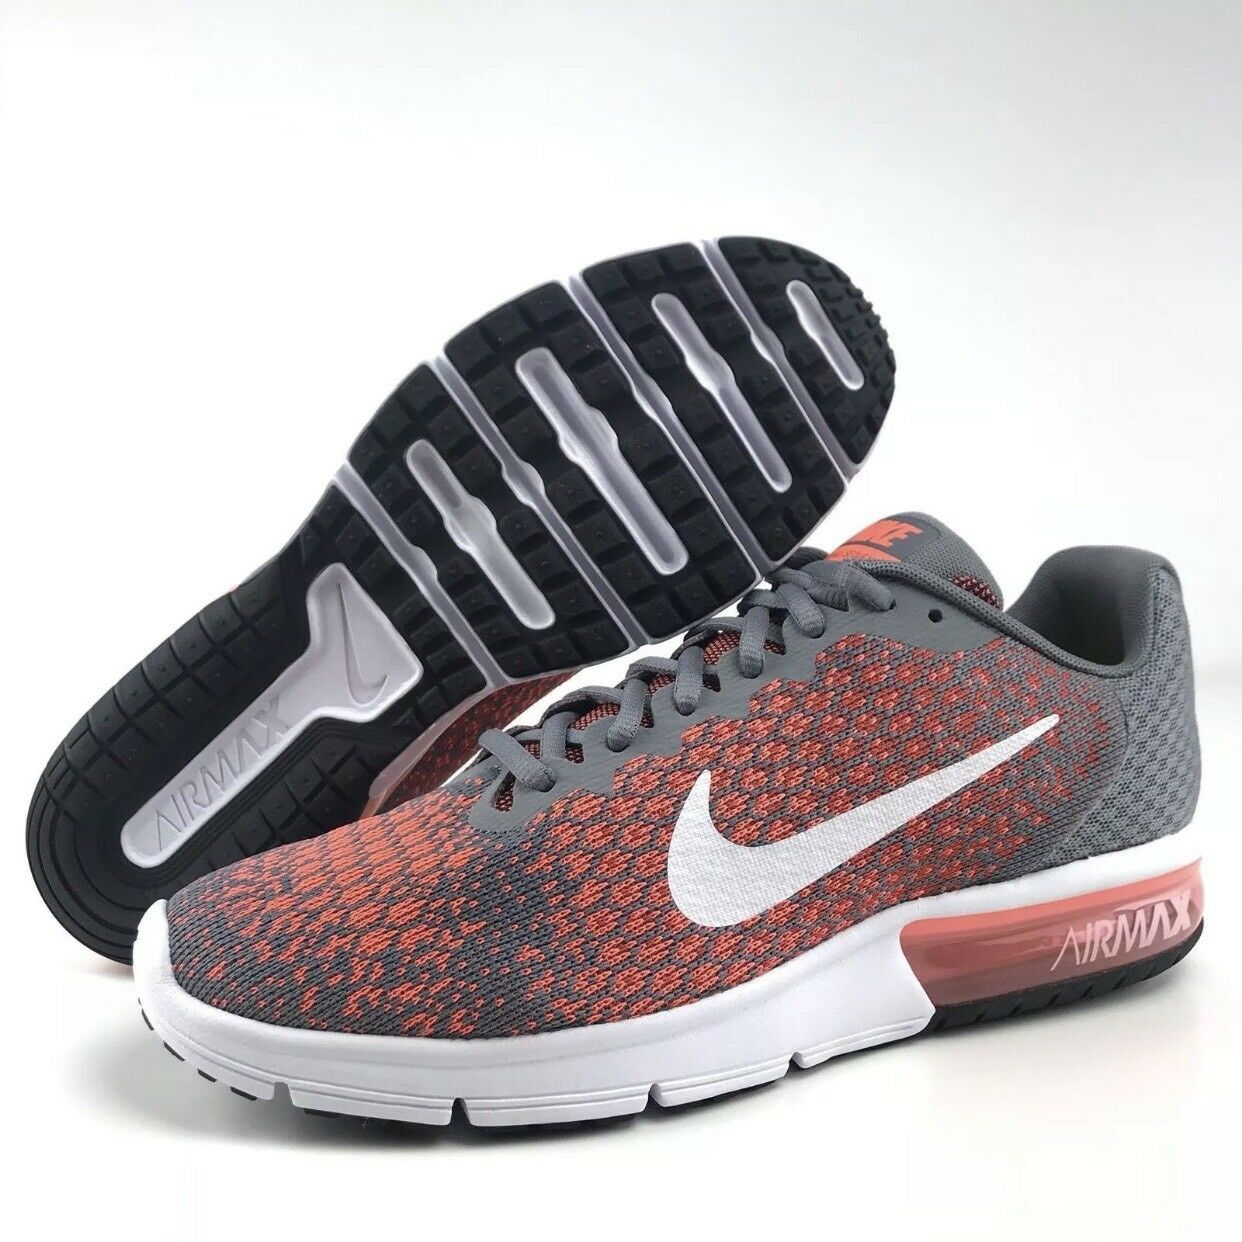 Nike Mens Cool Grey White Orange Air Max Sequent 2 Size 11 NWOB 852461